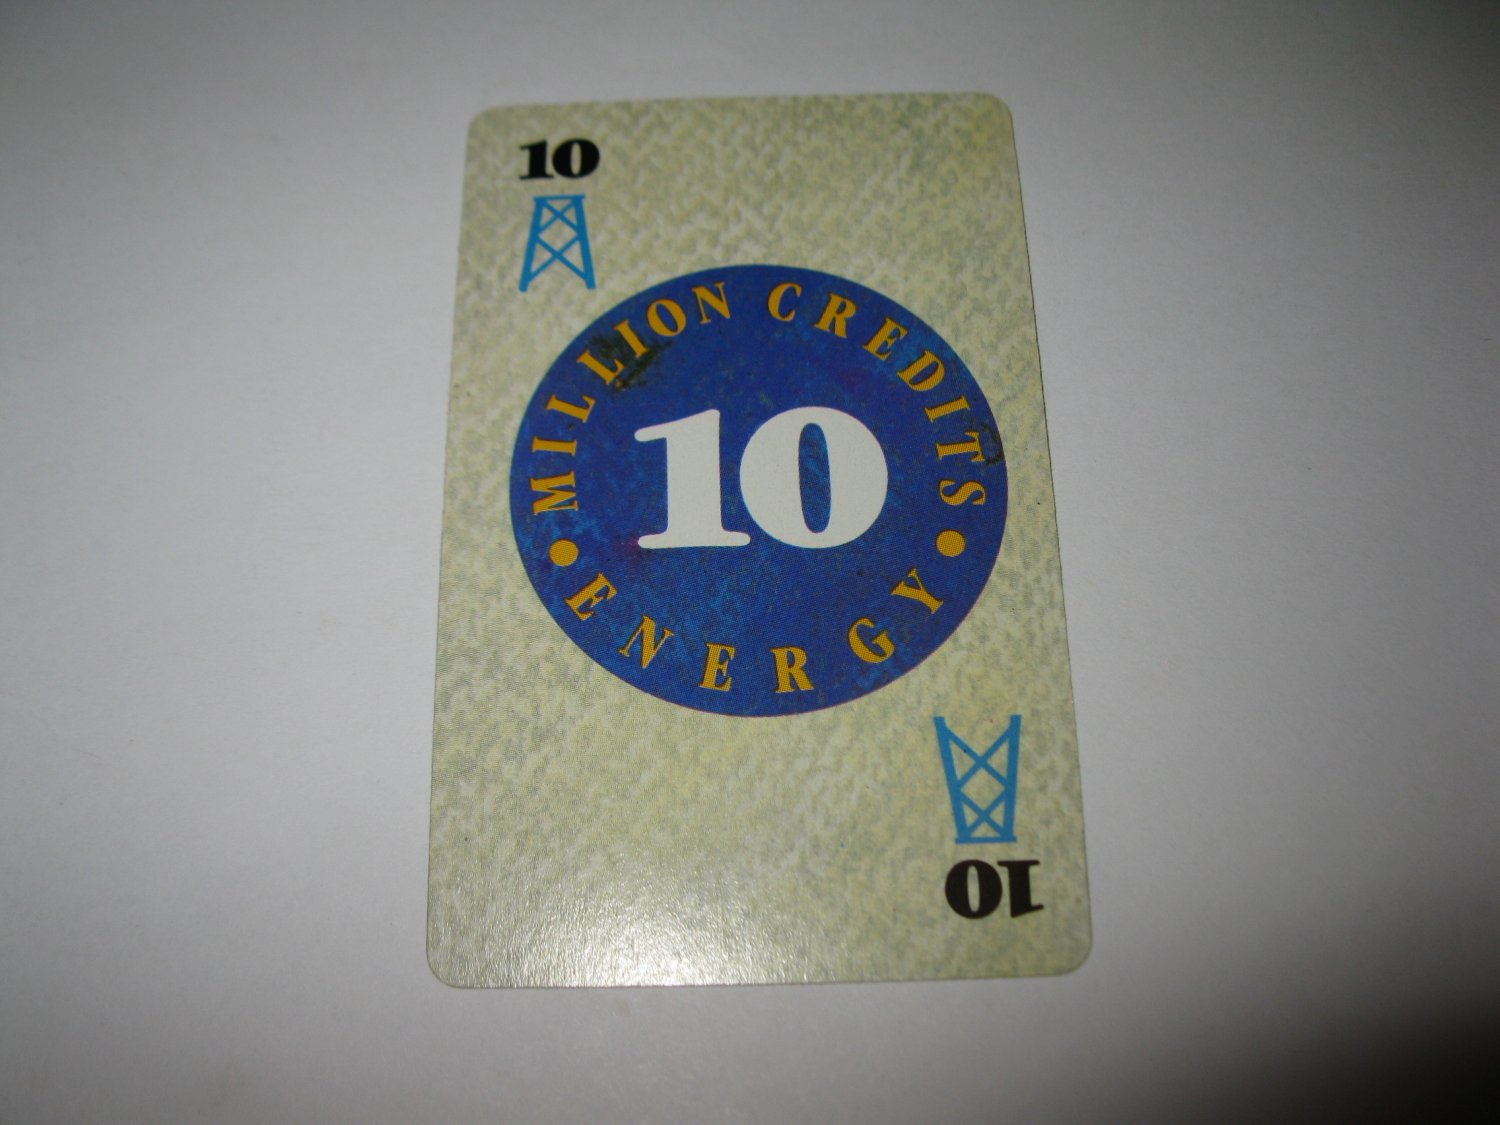 1986 Power Barons Board Game Piece: $10 Million Credits Energy card